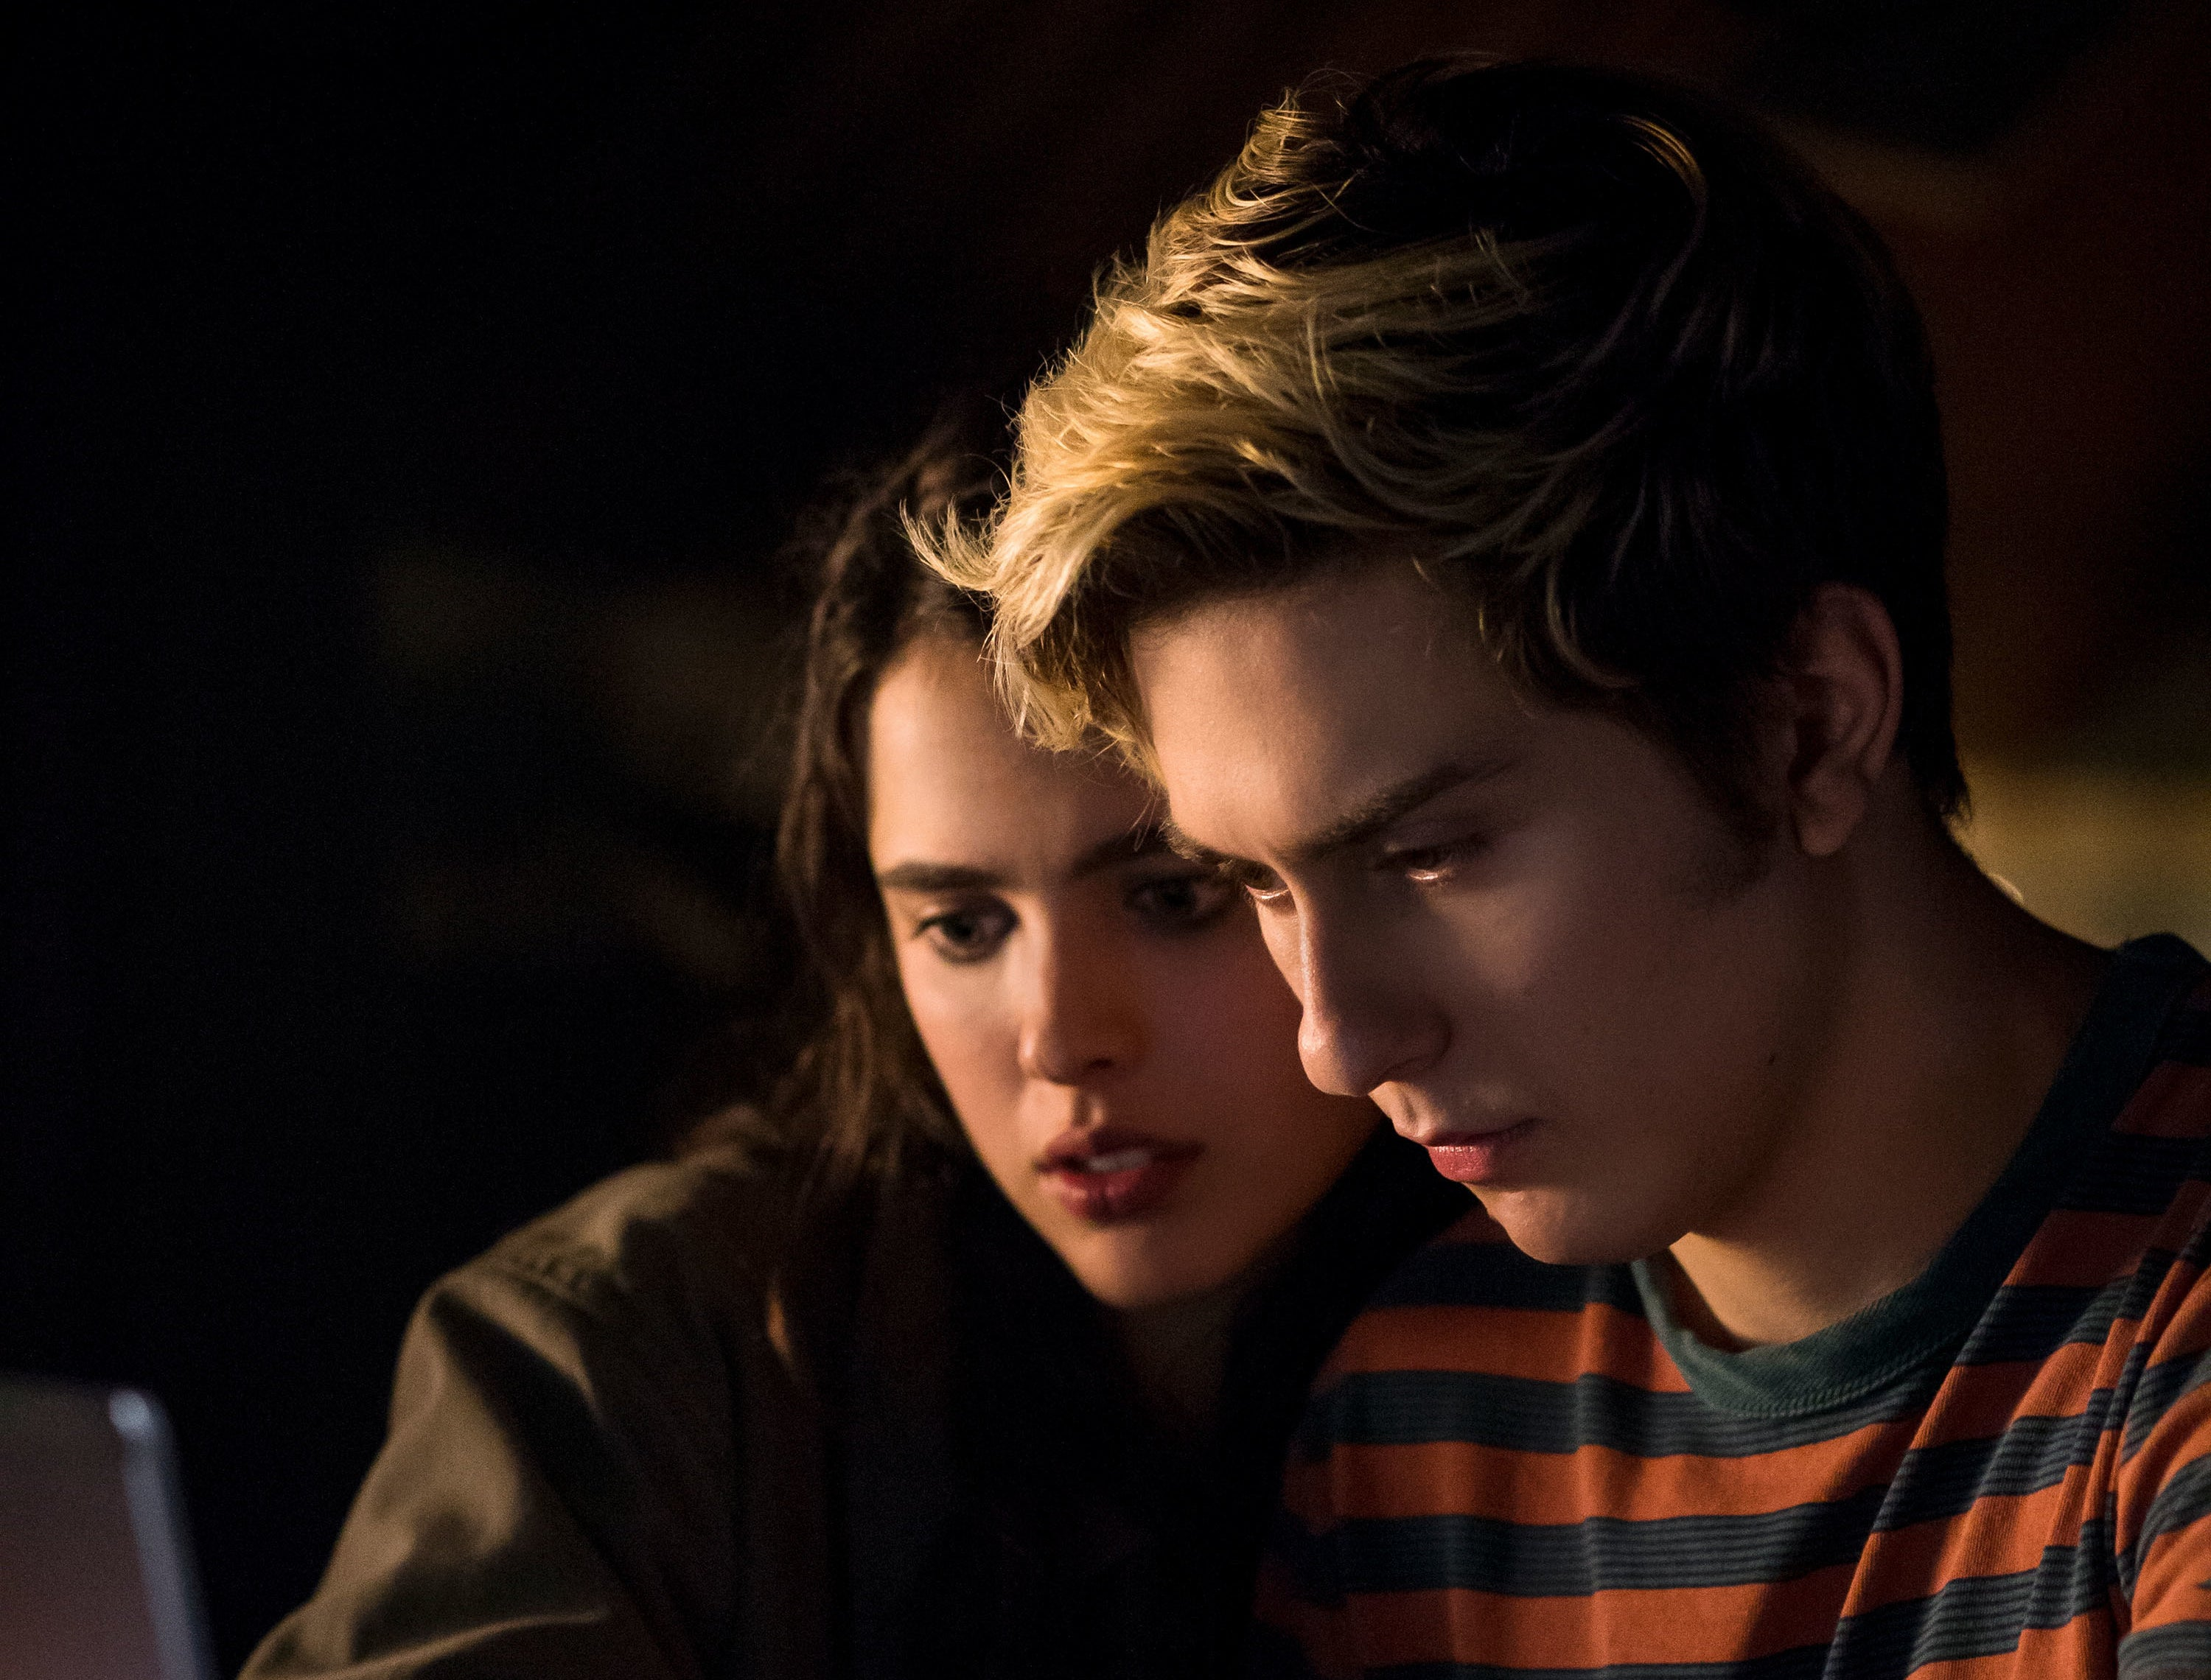 Nat Wolff as Light looking at content on his computer with his girlfriend.